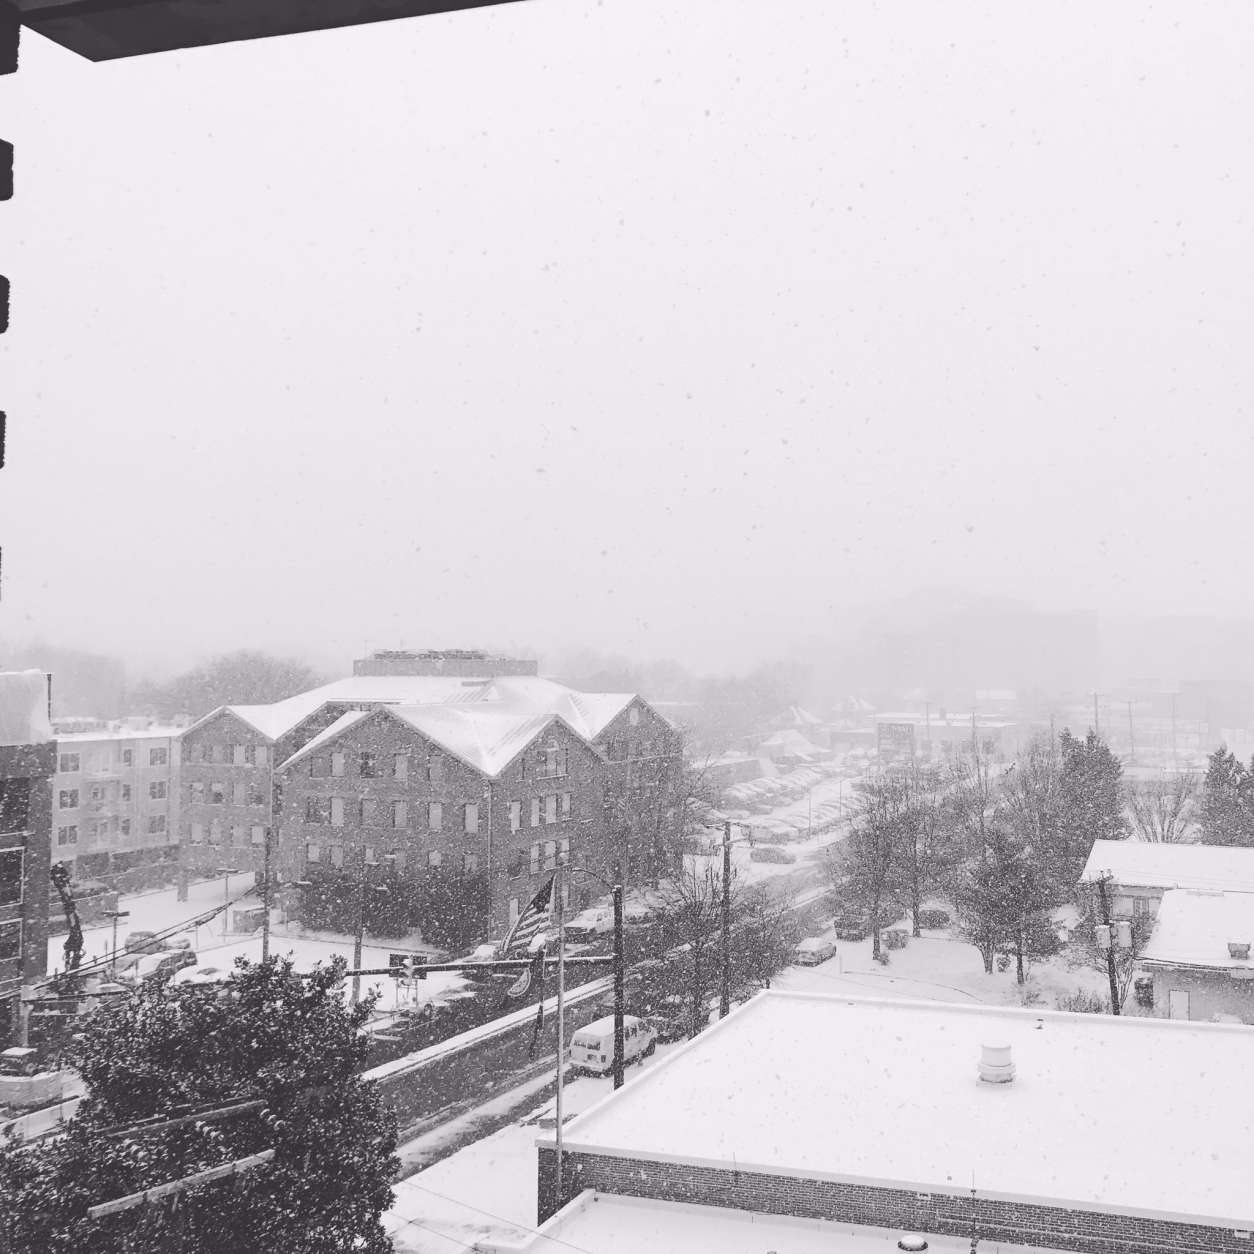 Snowfall captured in Clarendon. (Courtesy Kelly Lyles on Twitter)